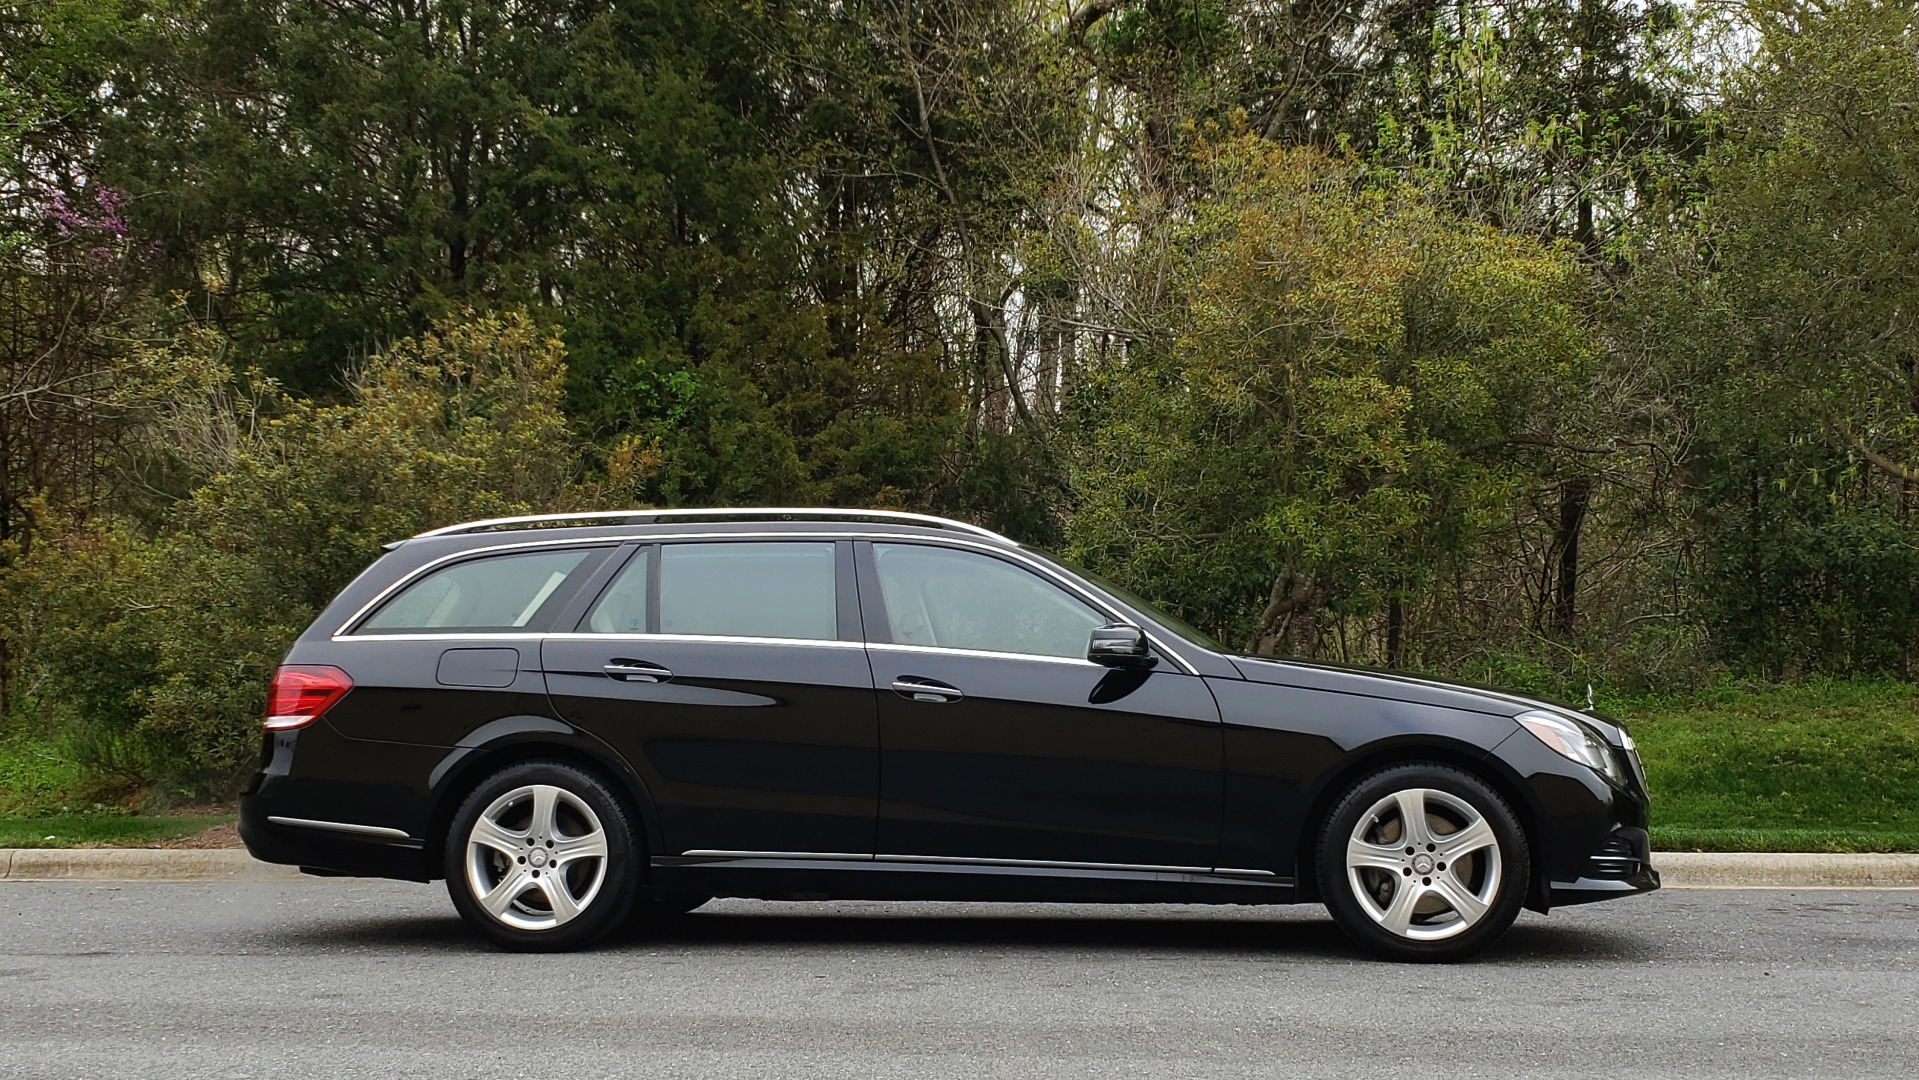 Used 2014 Mercedes-Benz E-Class E 350 4MATIC PREMIUM / NAV / SUNROOF / REARVIEW / 3-ROW for sale Sold at Formula Imports in Charlotte NC 28227 5